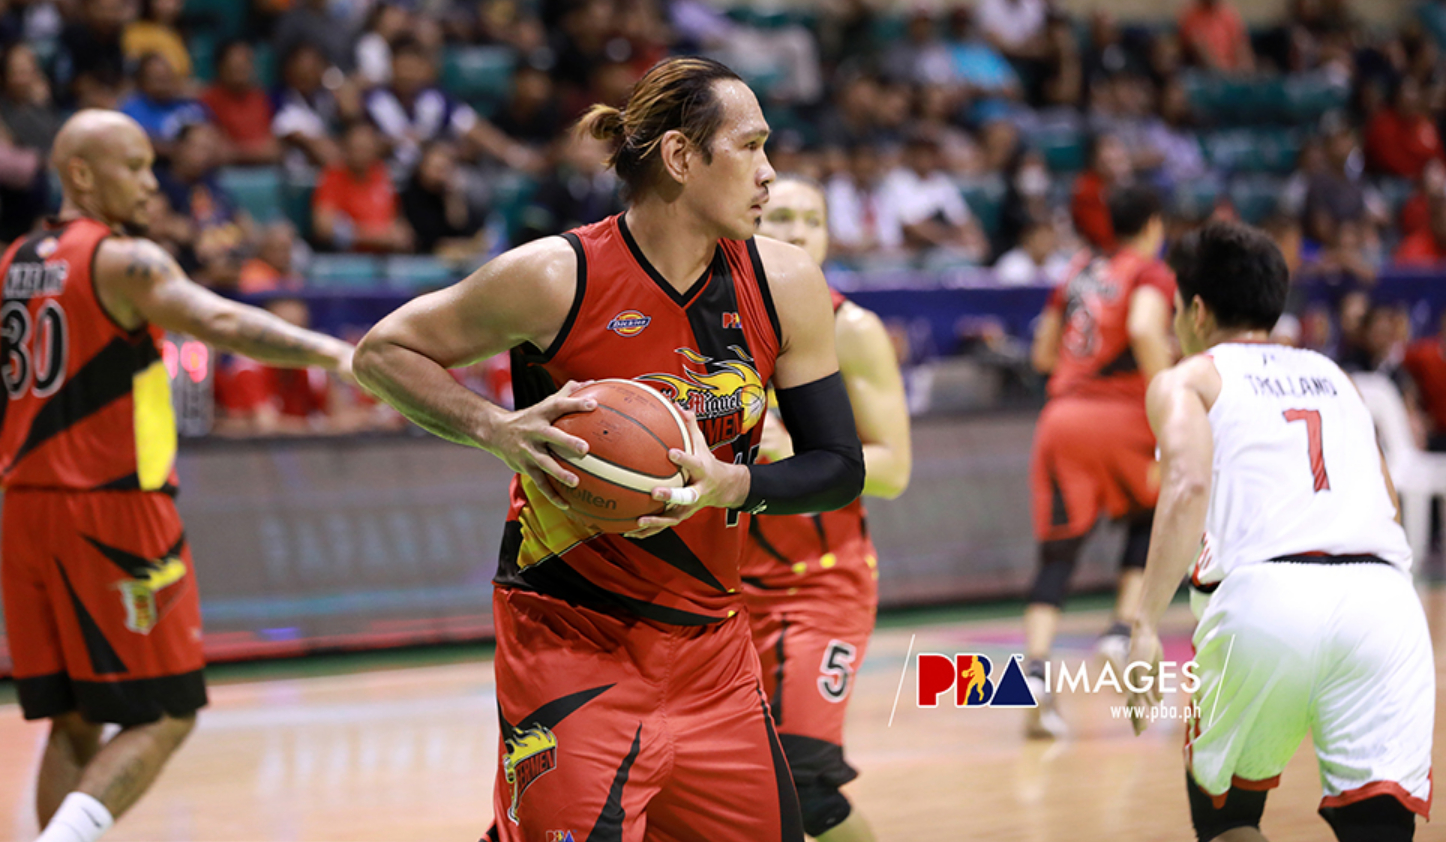 June Mar Fajardo Suffers Leg Injury, Out Indefinitely